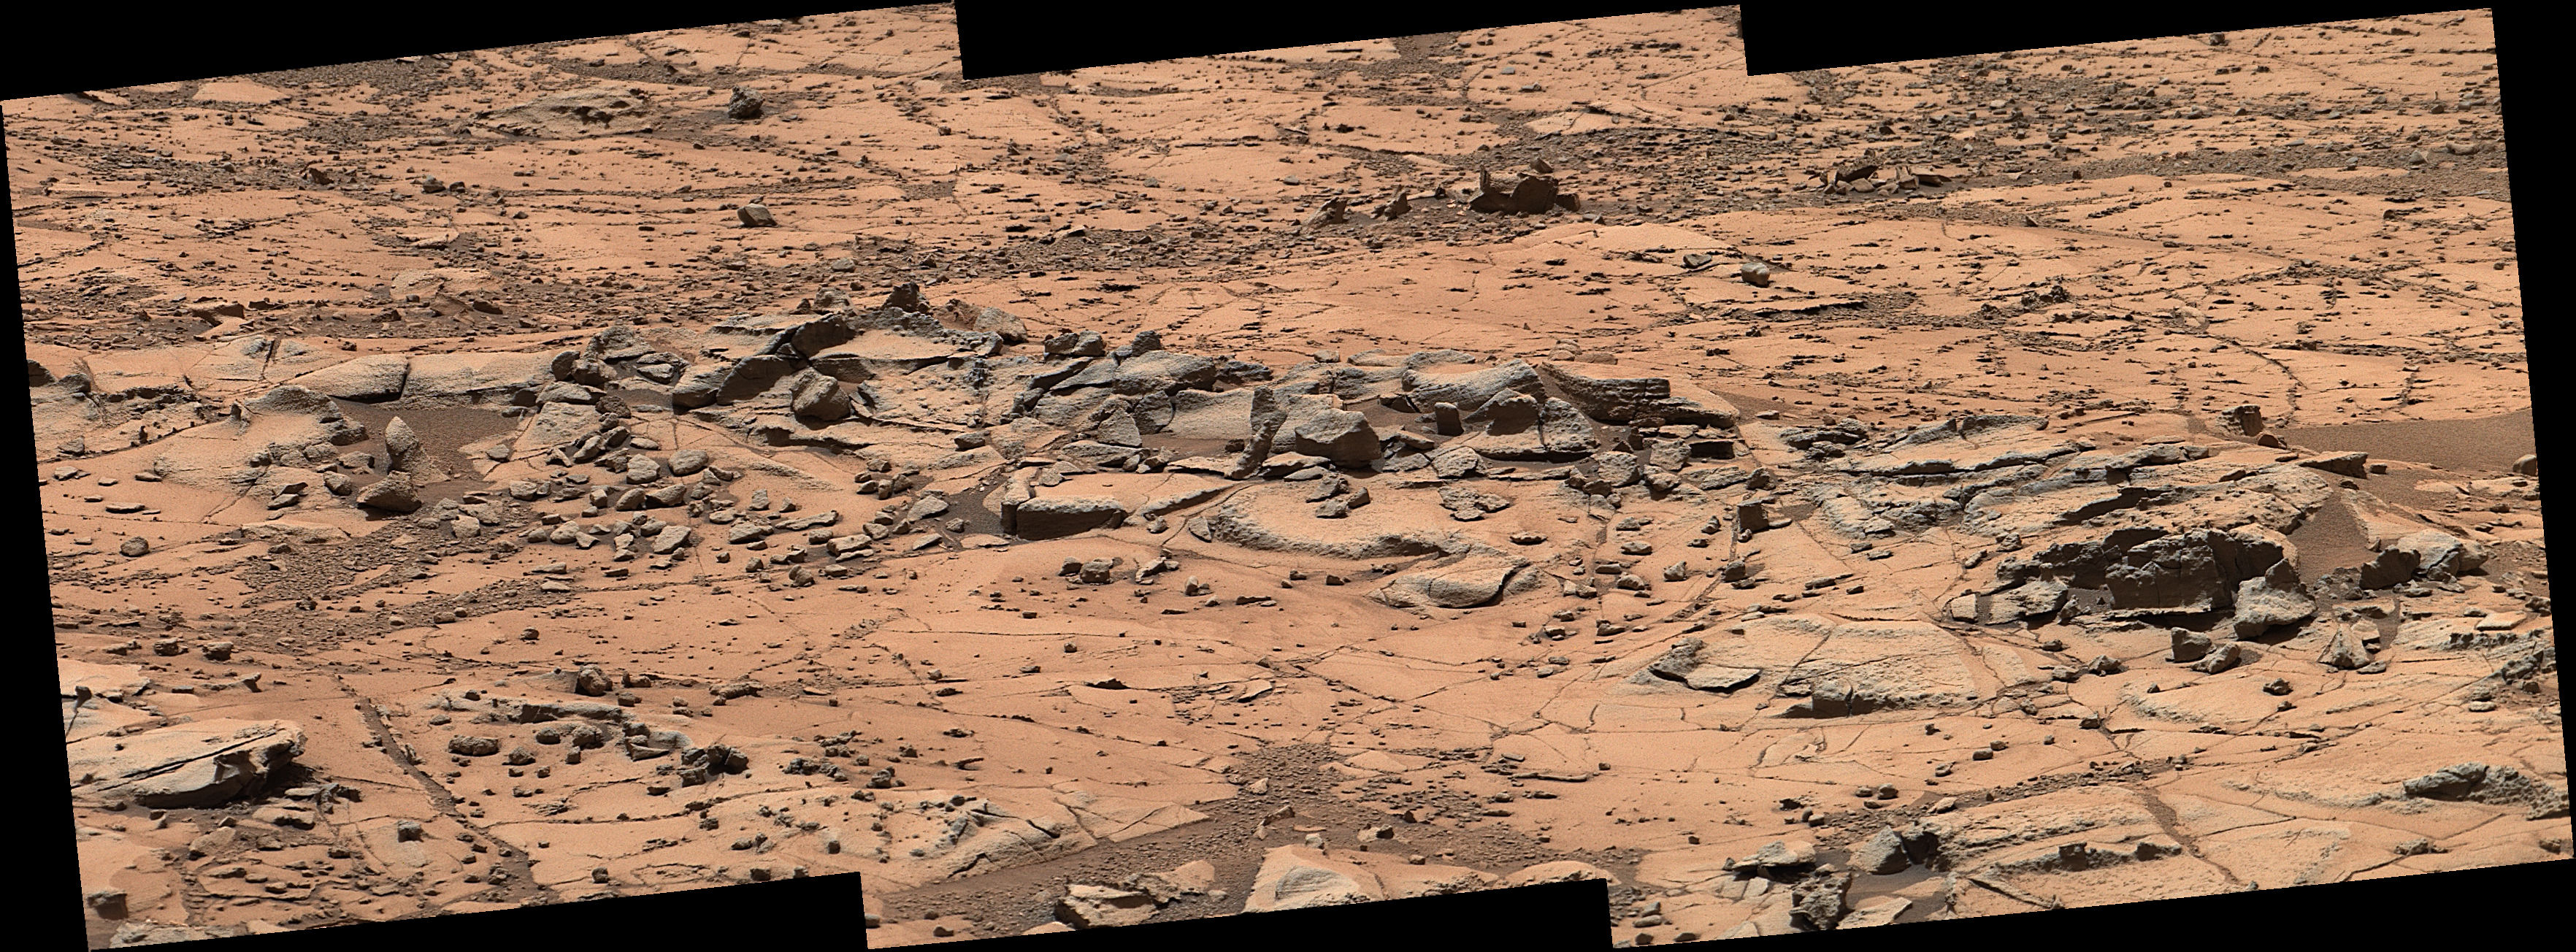 Second Time Through, Mars Rover Examines Chosen Rocks | NASA